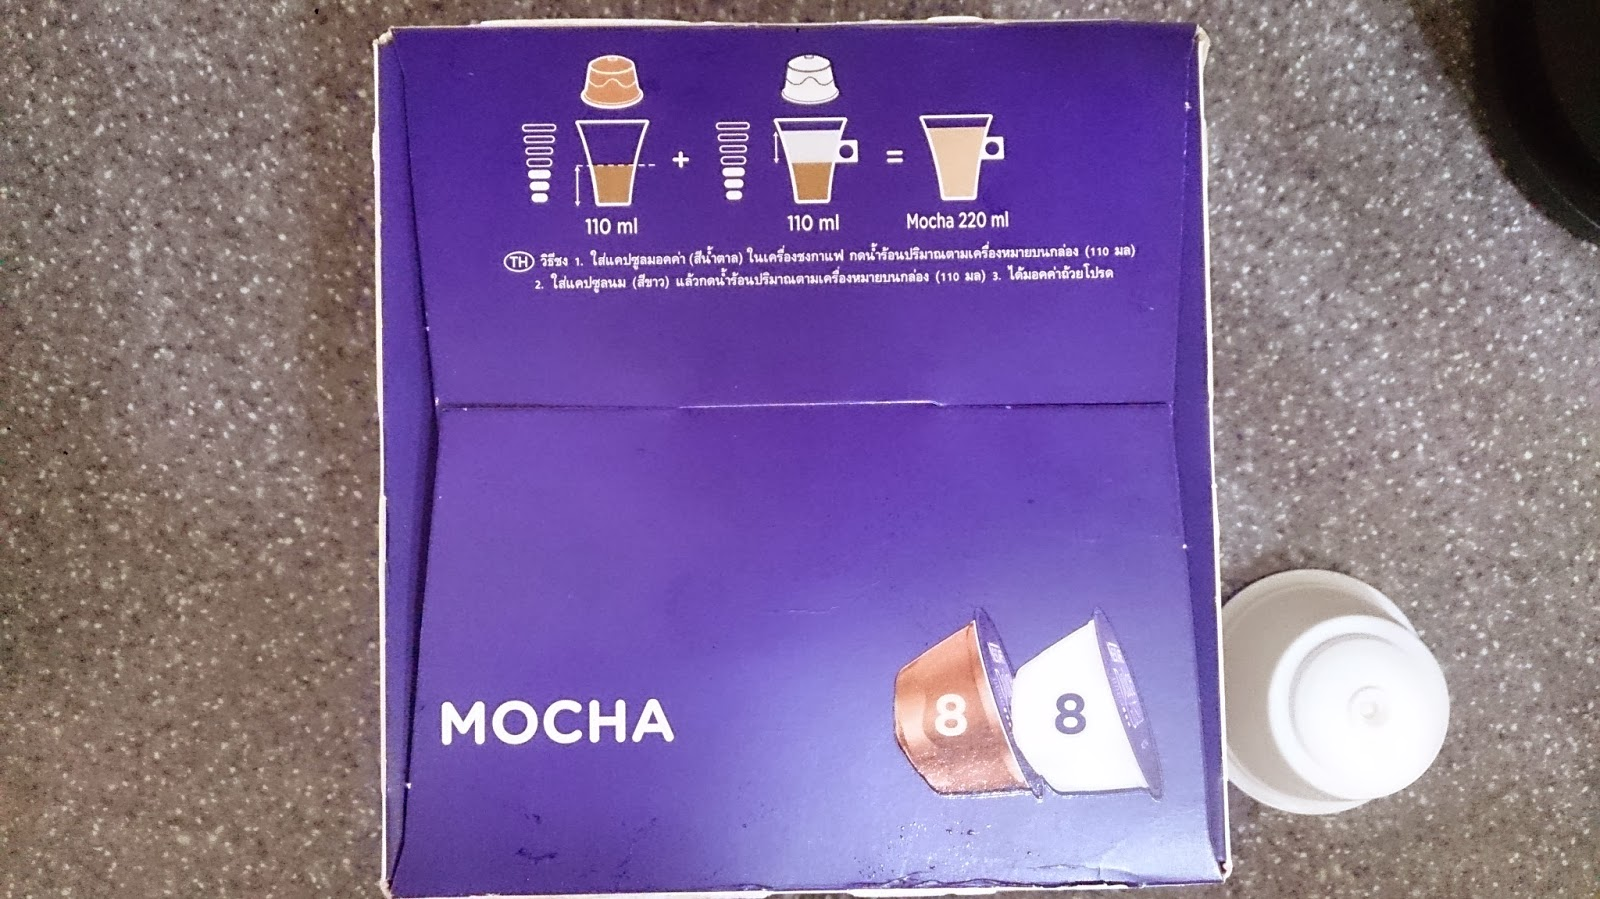 dolce gusto mocha instructions